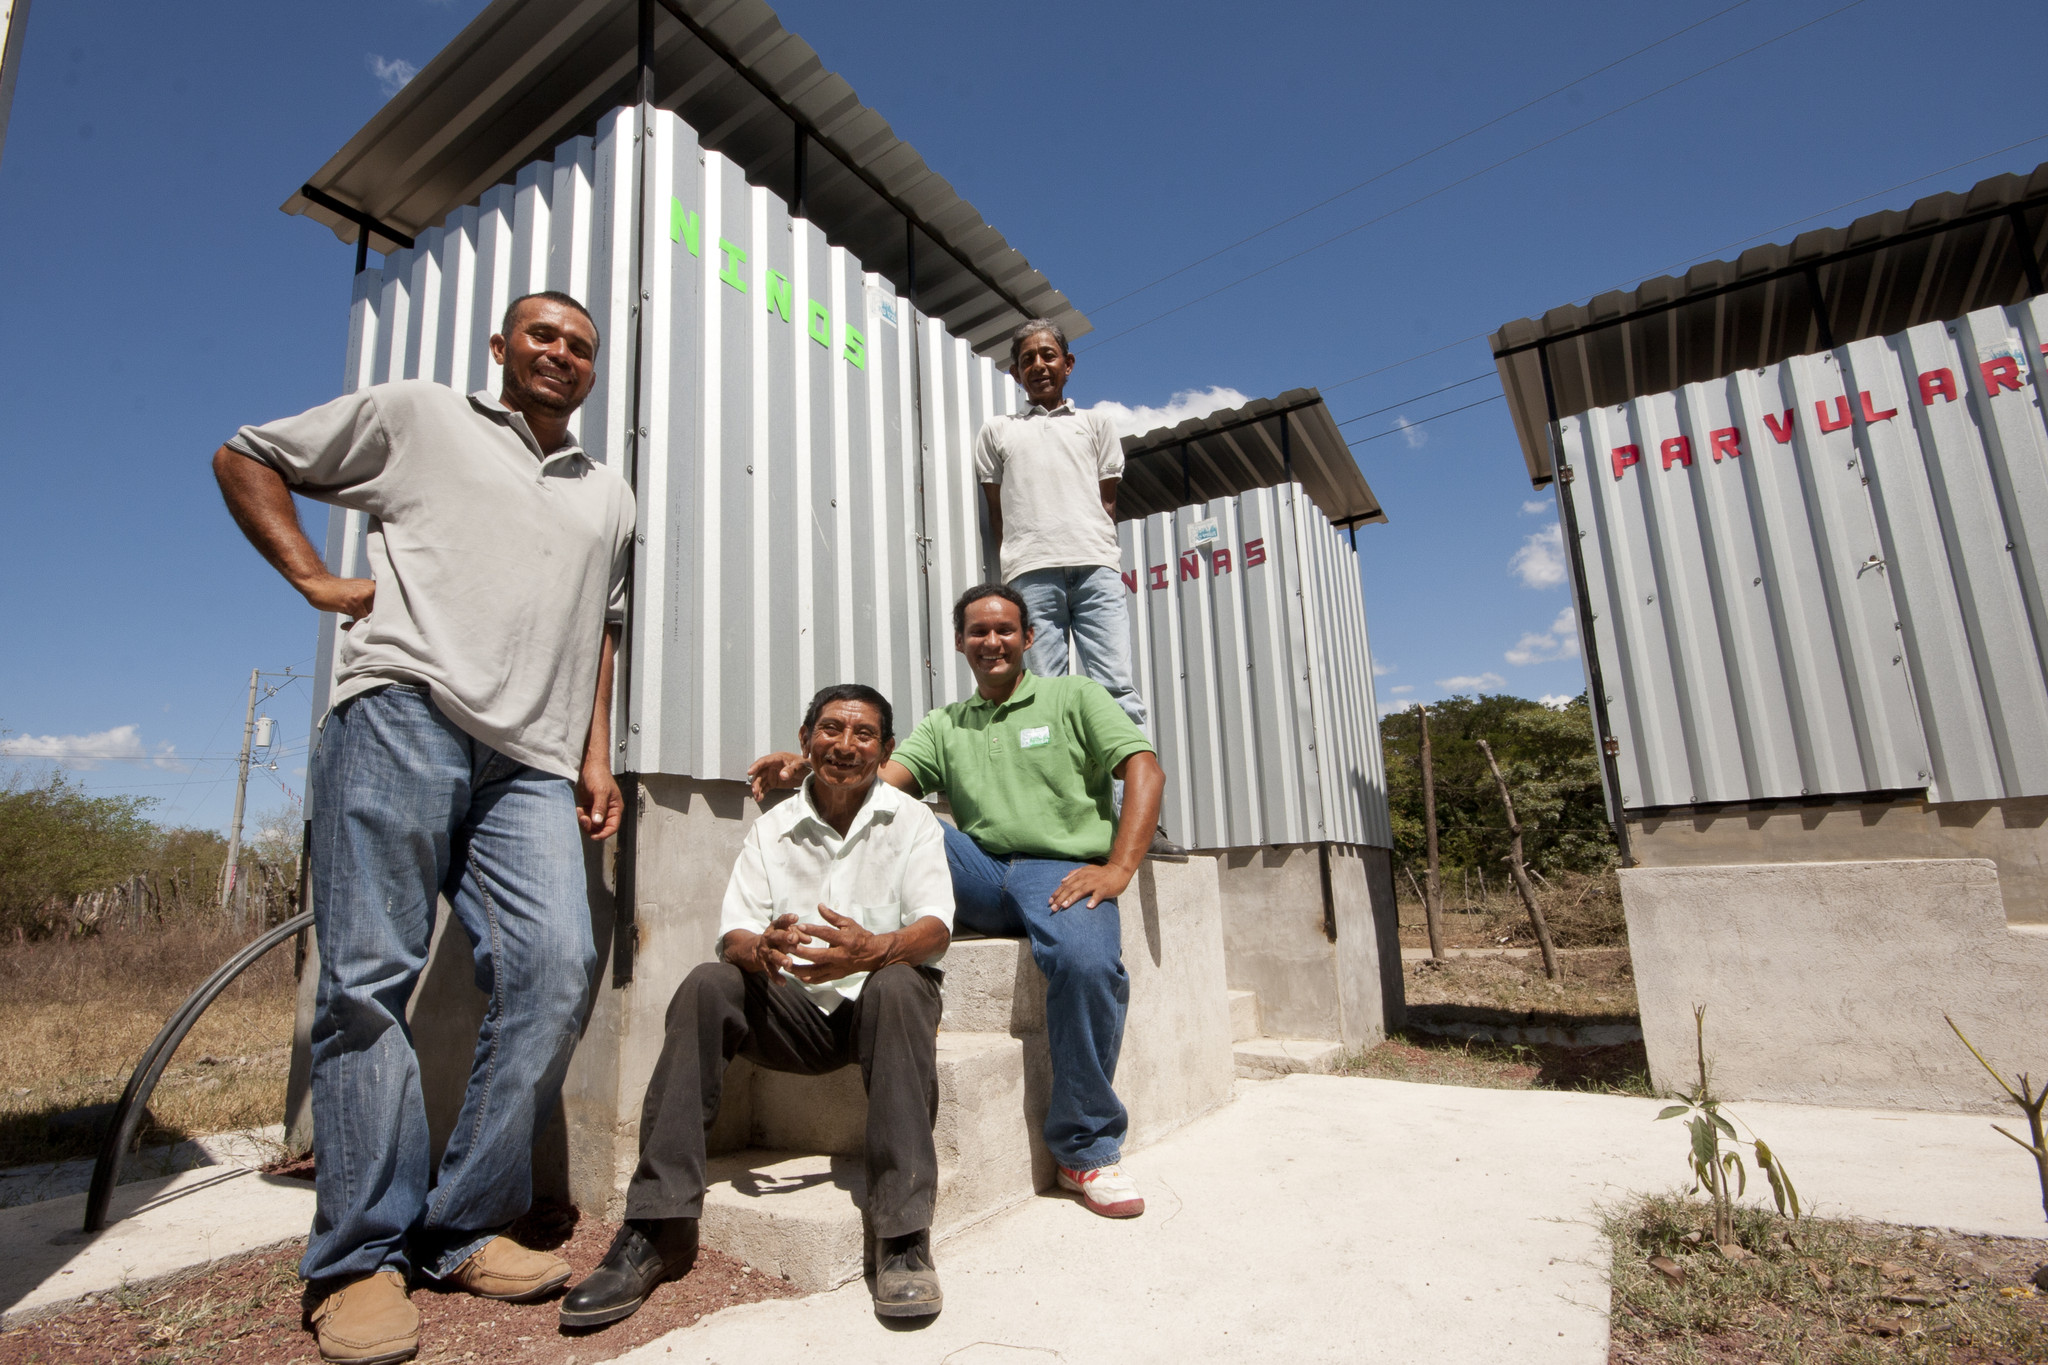 Members of a local public health team show visitors newly built composting latrines in El Salitral, El Salvador. Composting latrines are less likely to pollute nearby water sources in the event of heavy rains accompanying tropical storms, a recurring threat to the country. Photo: René Figueroa/Oxfam America Hernández, and José Eulalio Ortiz - members of the community of El Salitral - with Juan Ramon Flores (green shirt) - health promoter for Oxfam partner PROVIDA and a member of the national WASH team - pose with composting latrines installed at a school by PROVIDA.